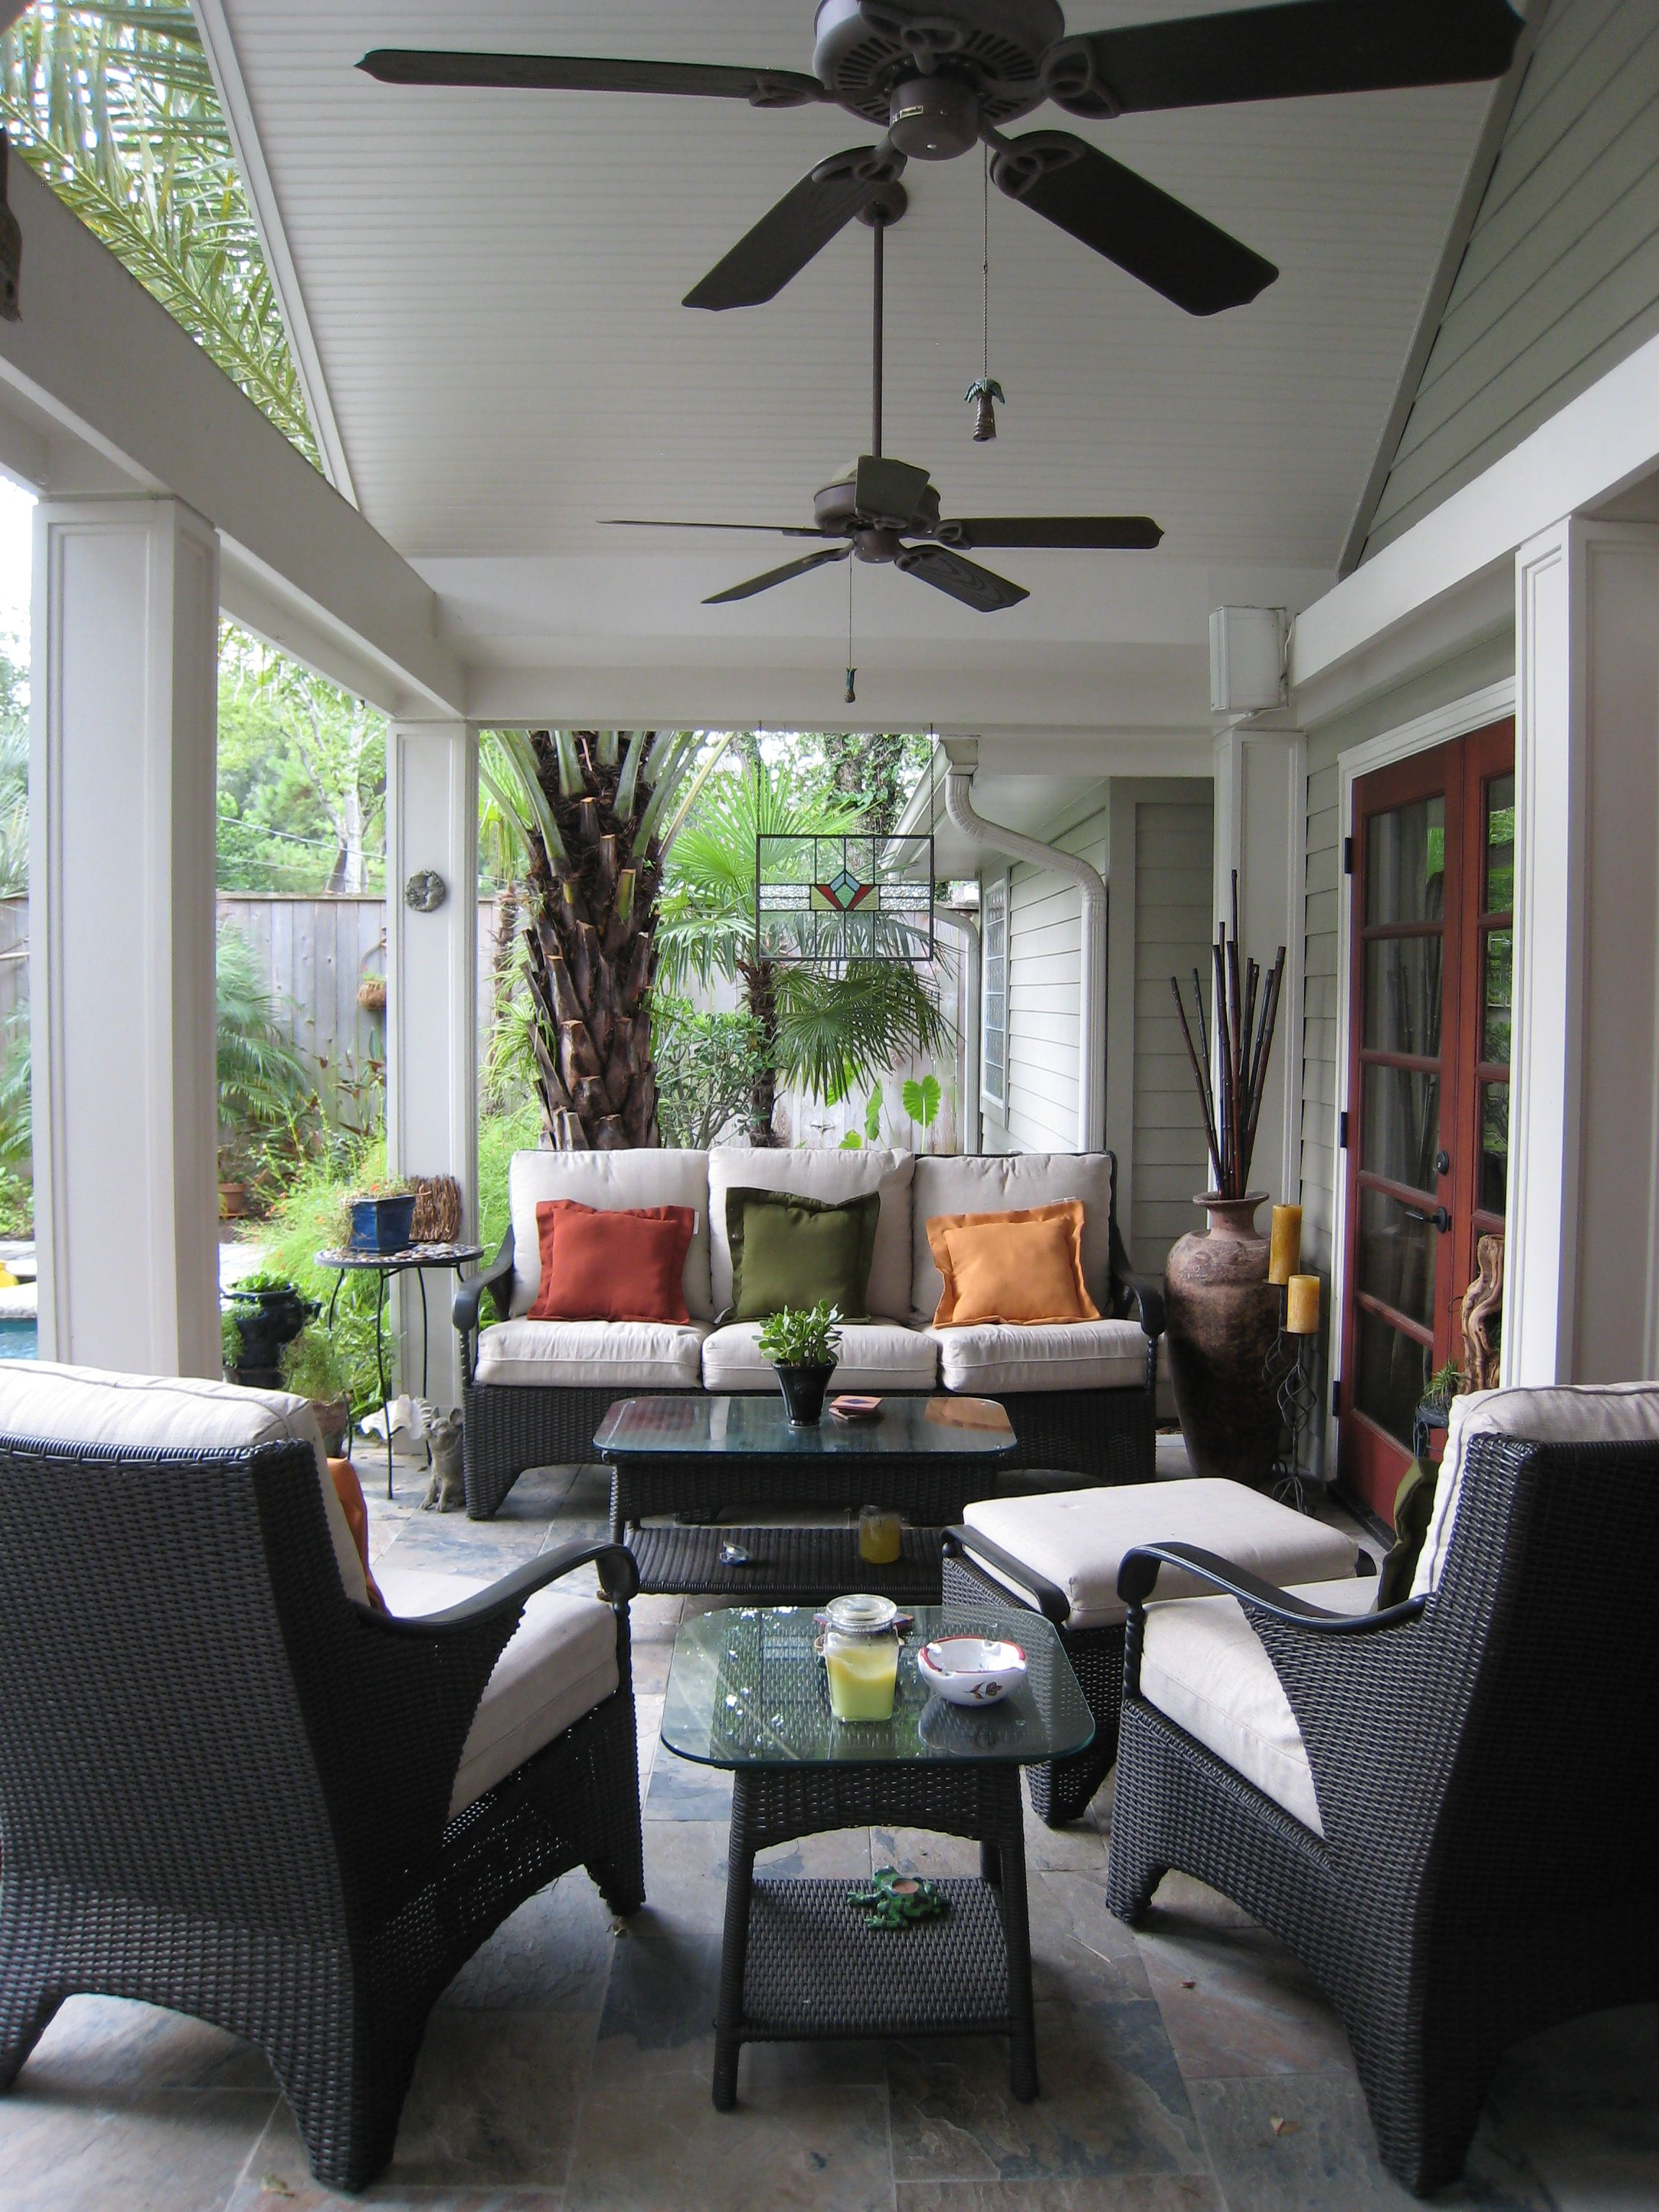 esgntv x for articulating mount fans of patios wall com outdoor patio photo